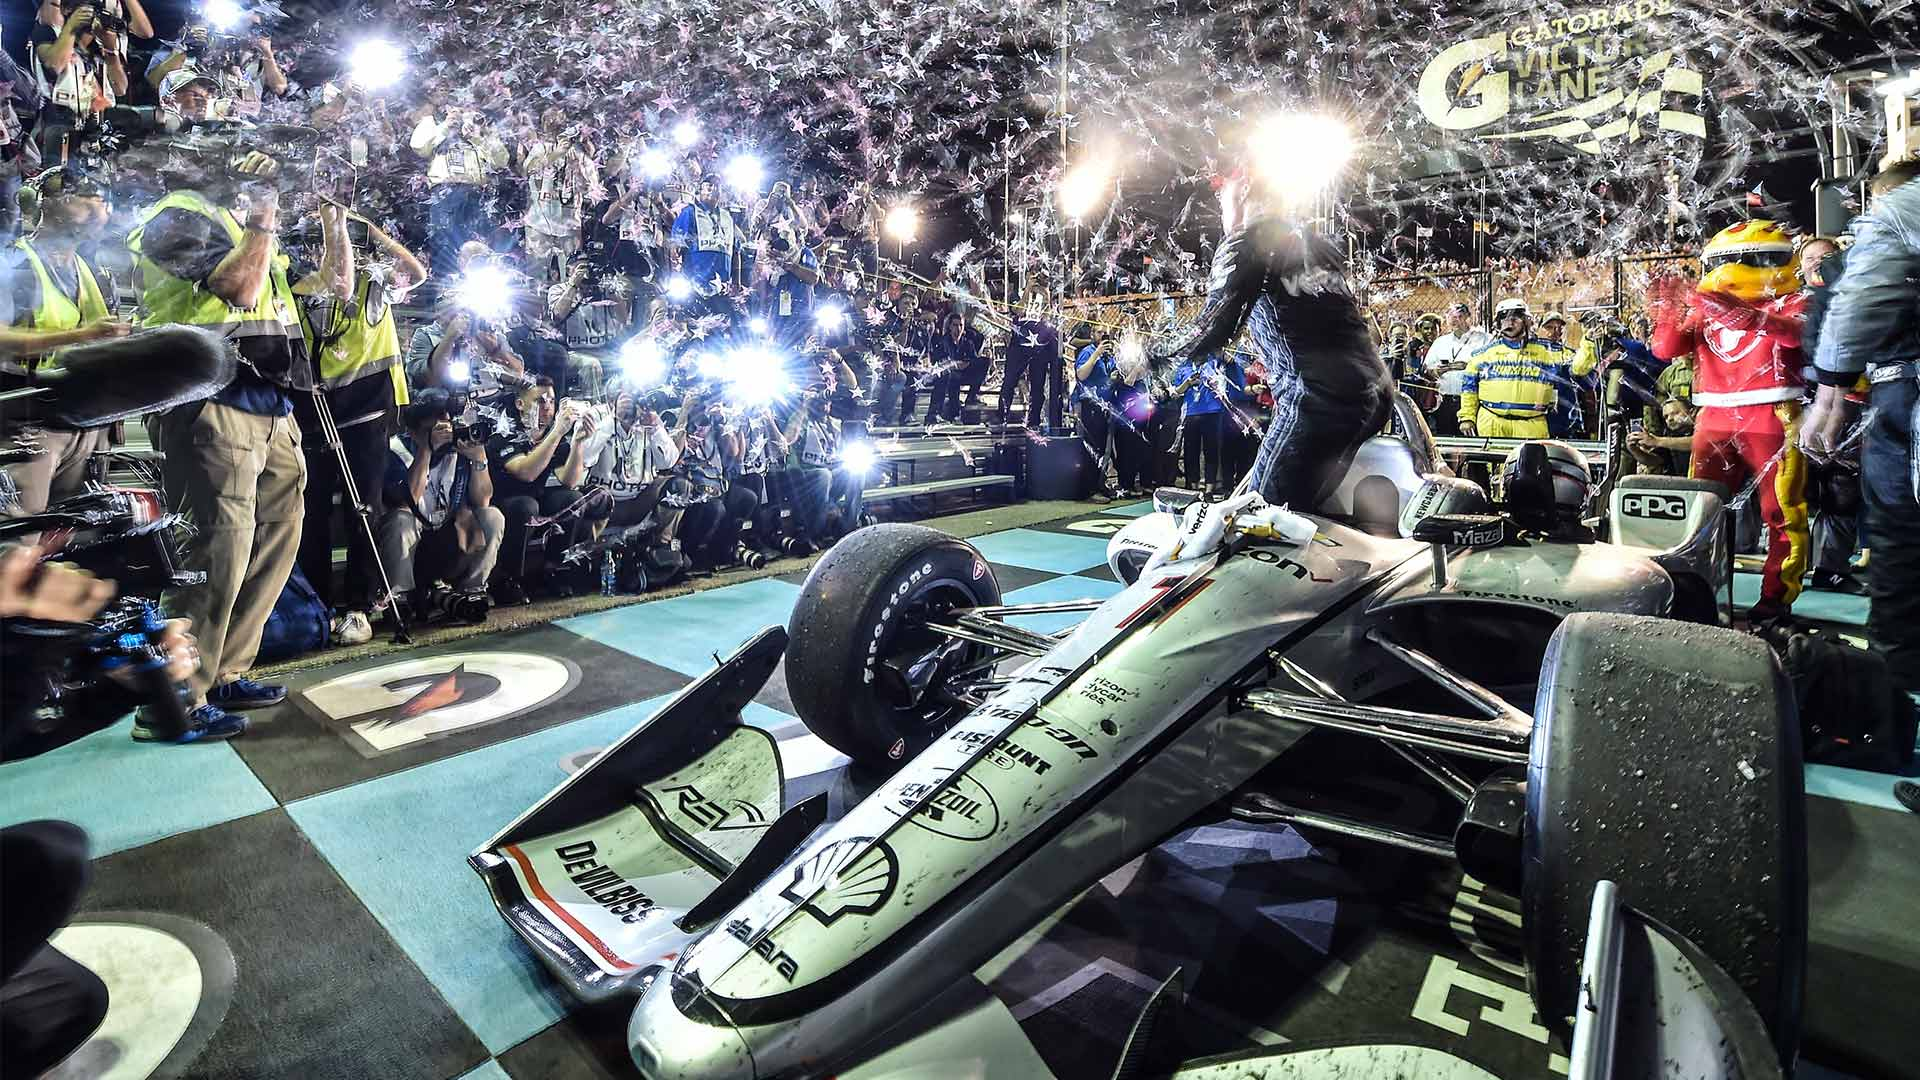 Cameras flashing and confetti flying as Josef Newgarden exits his car in victory circle